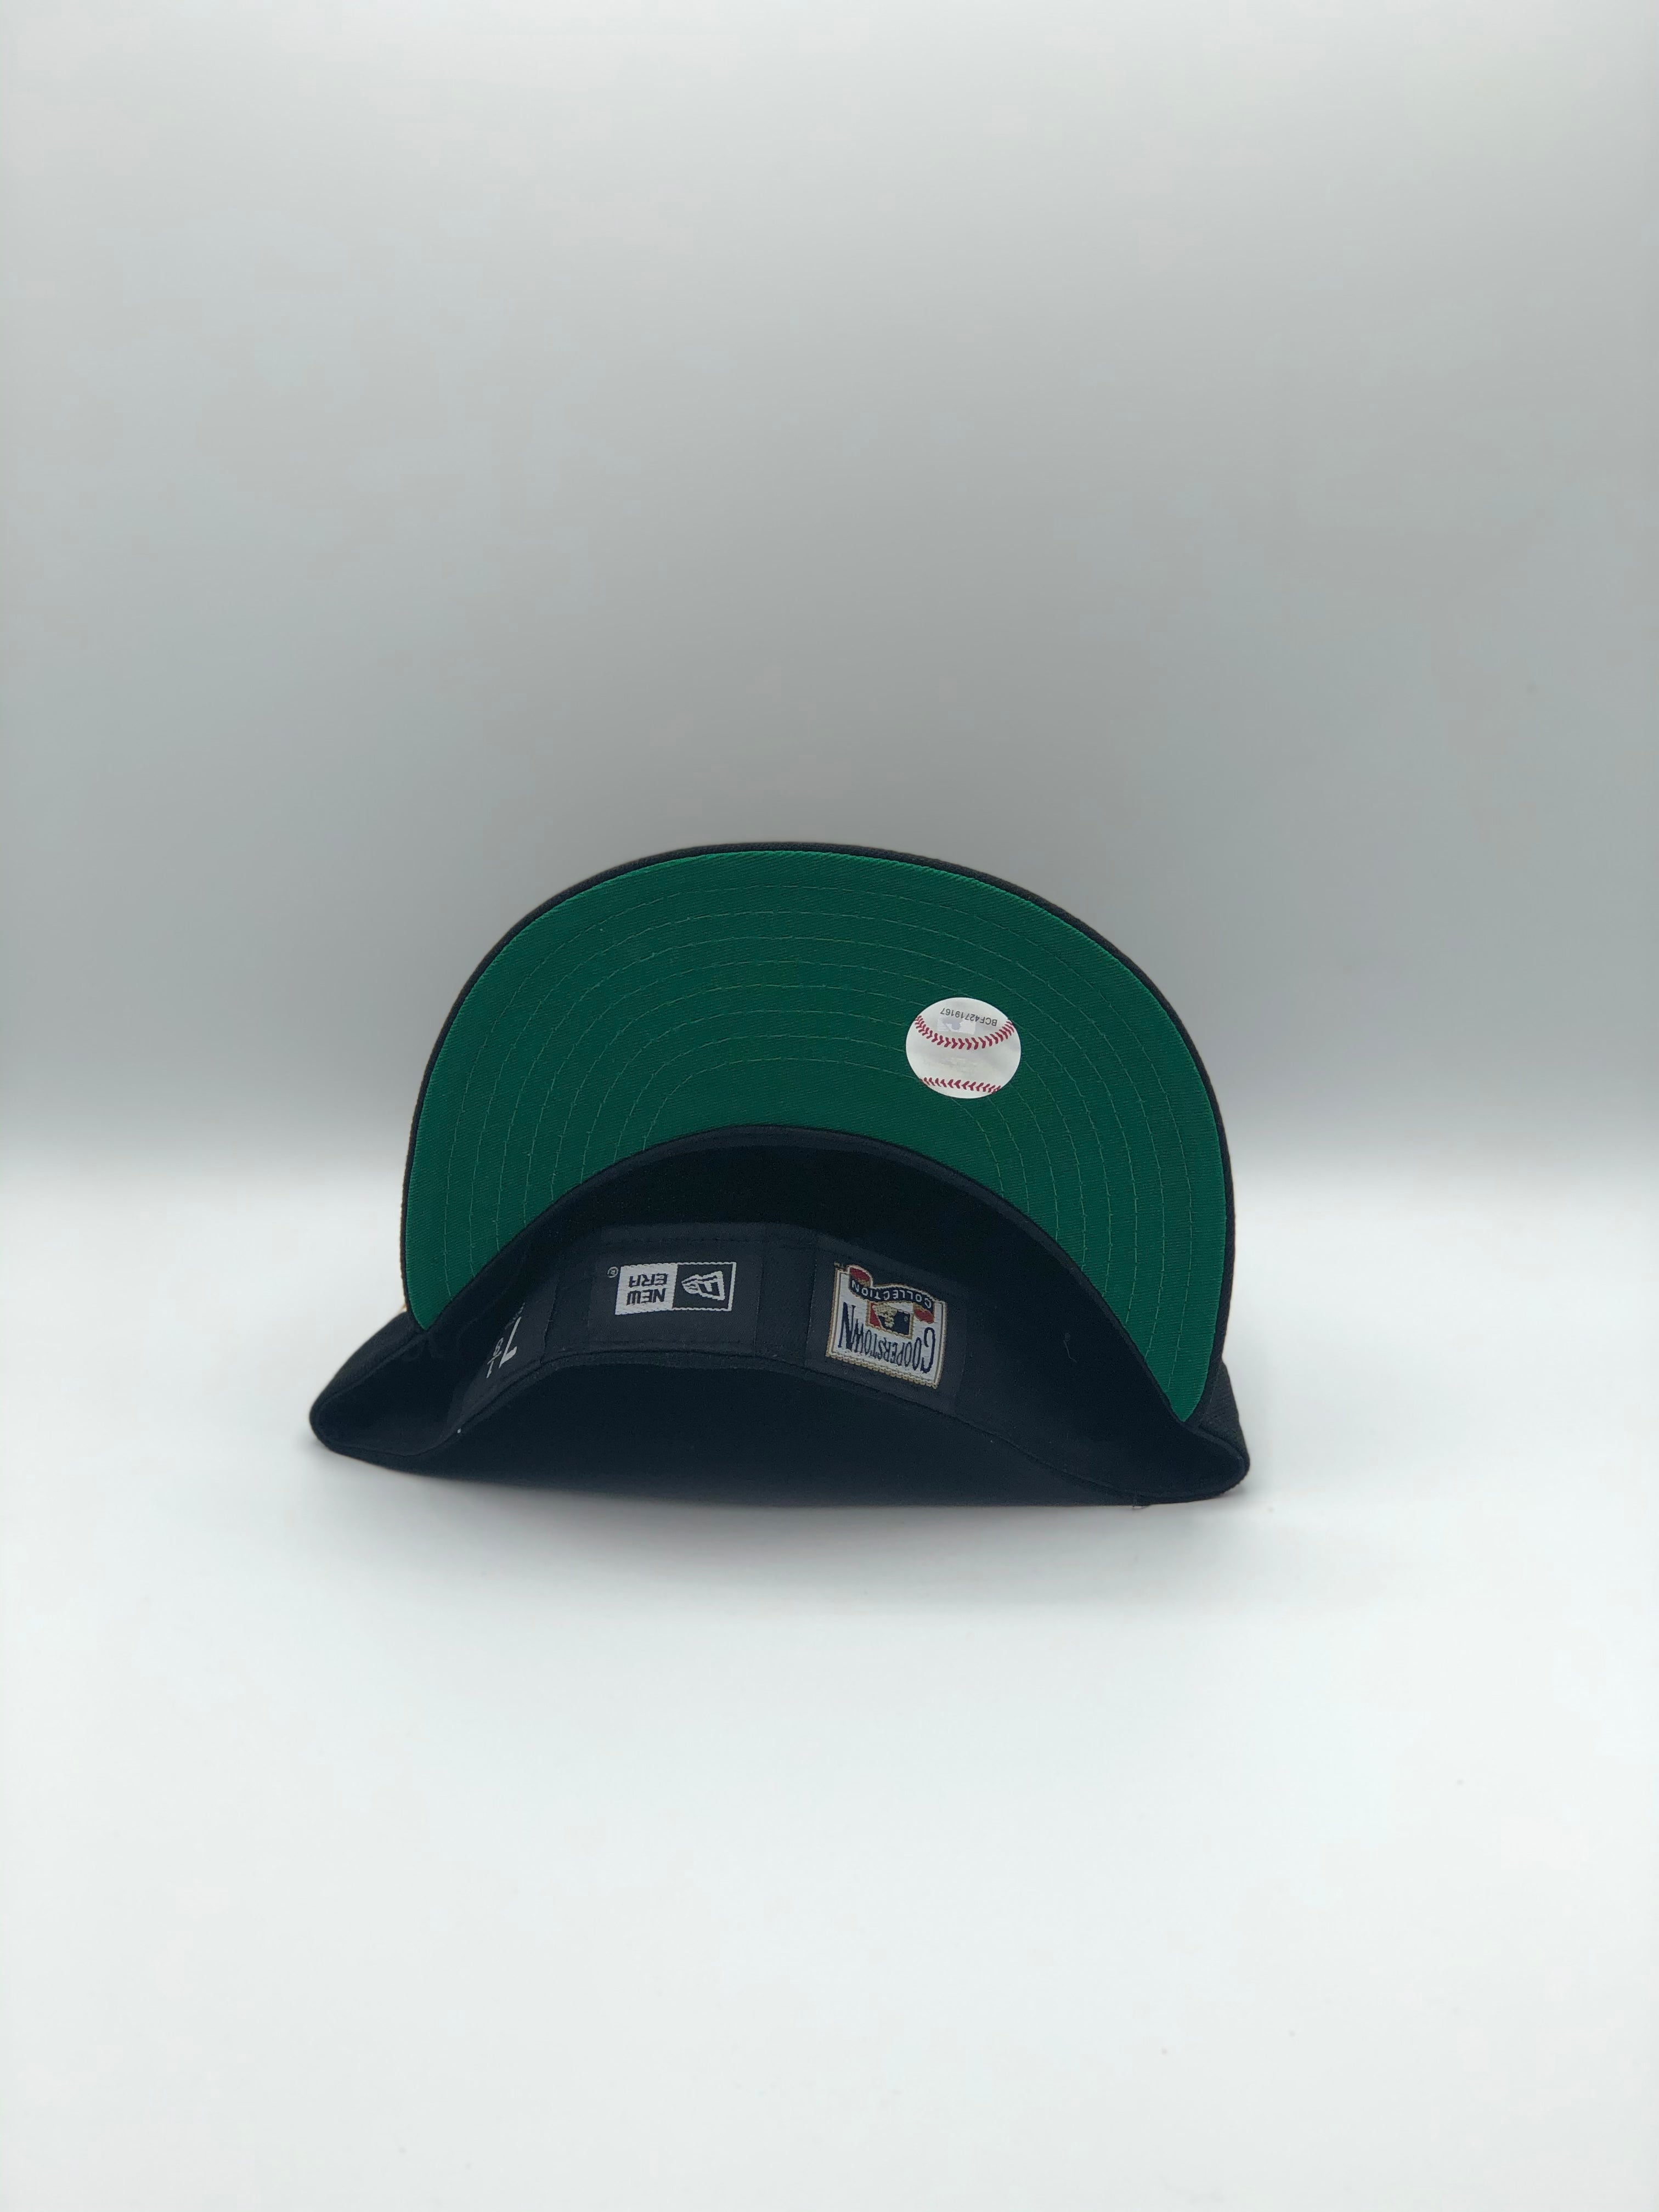 LOS ANGELES DODGERS (PIRATES COLORWAY) x 1959 ASG NEW ERA 59FIFTY (KELLY UV)